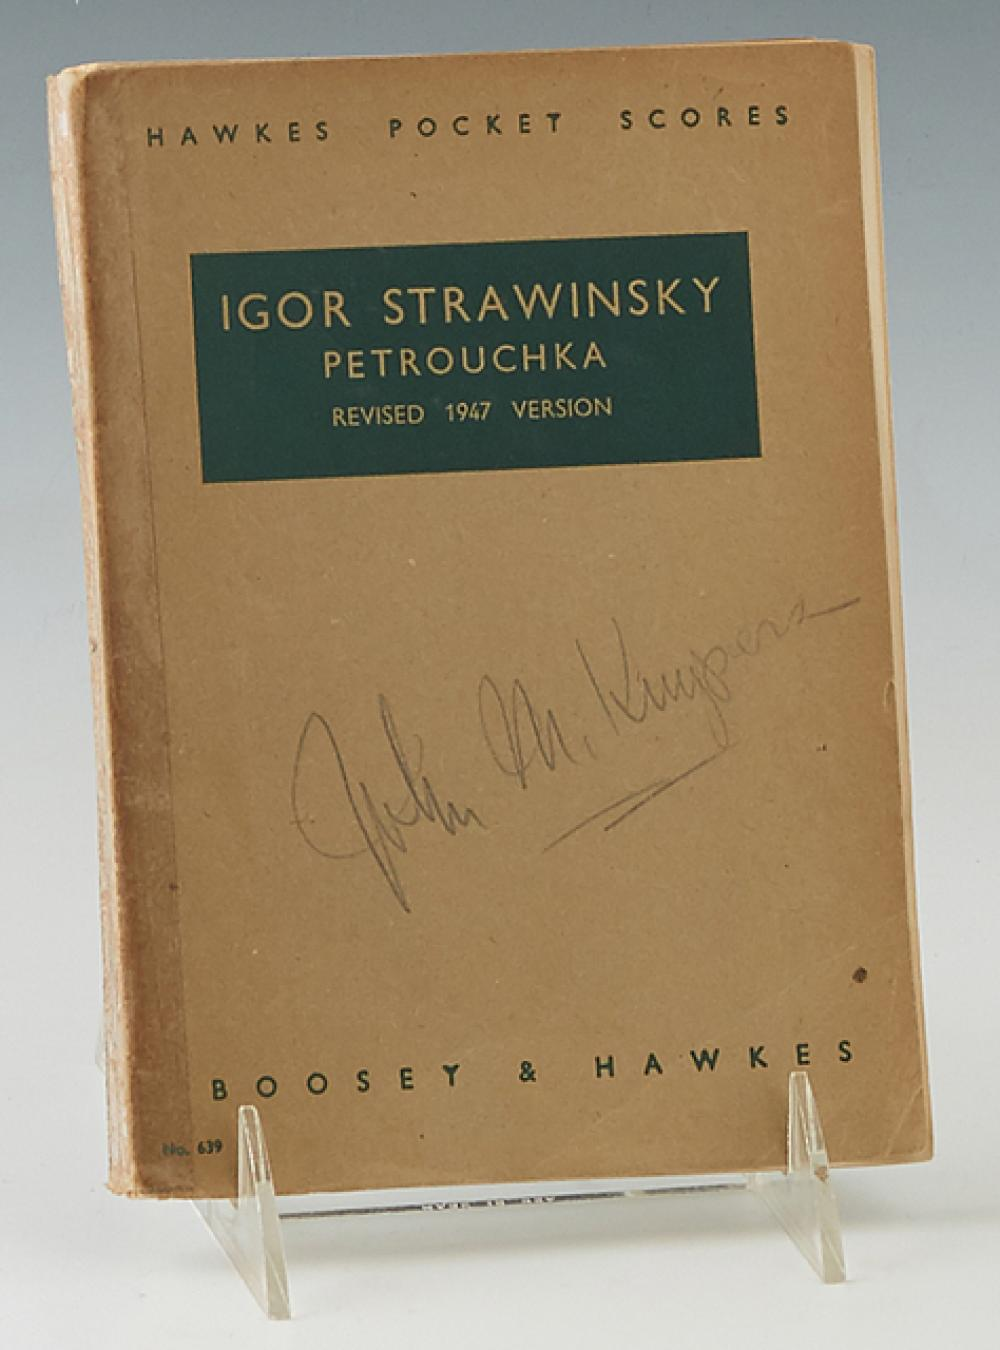 """Igor Stravinsky (1882-1971), """"Petrouchka,"""" 1947, musical score, published by Boosey & Hawkes, pen signed on the title page by Igor S..."""